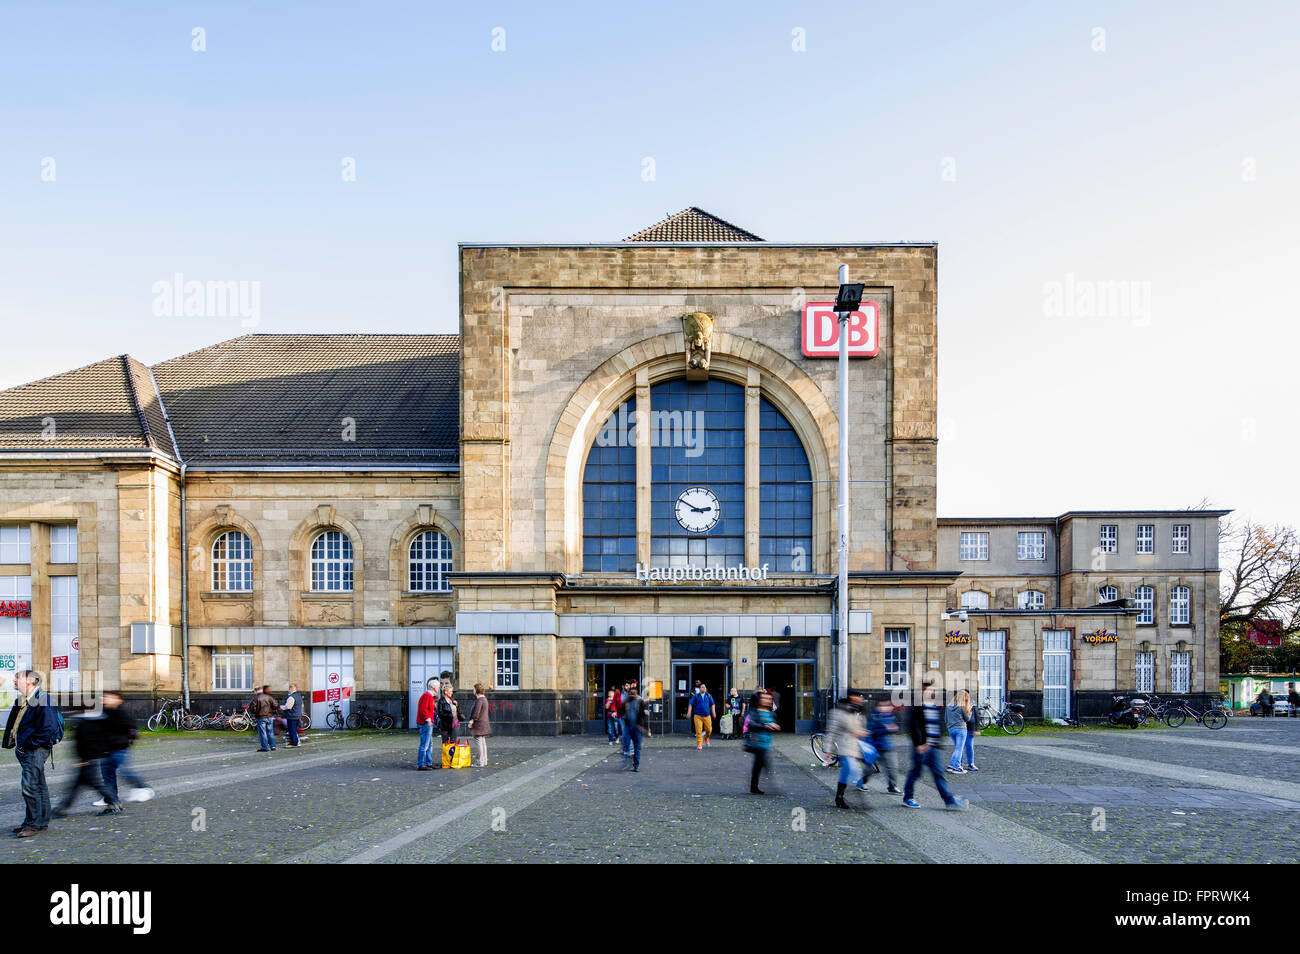 Central railway station, Mönchengladbach, North Rhine-Westphalia, Germany - Stock Image